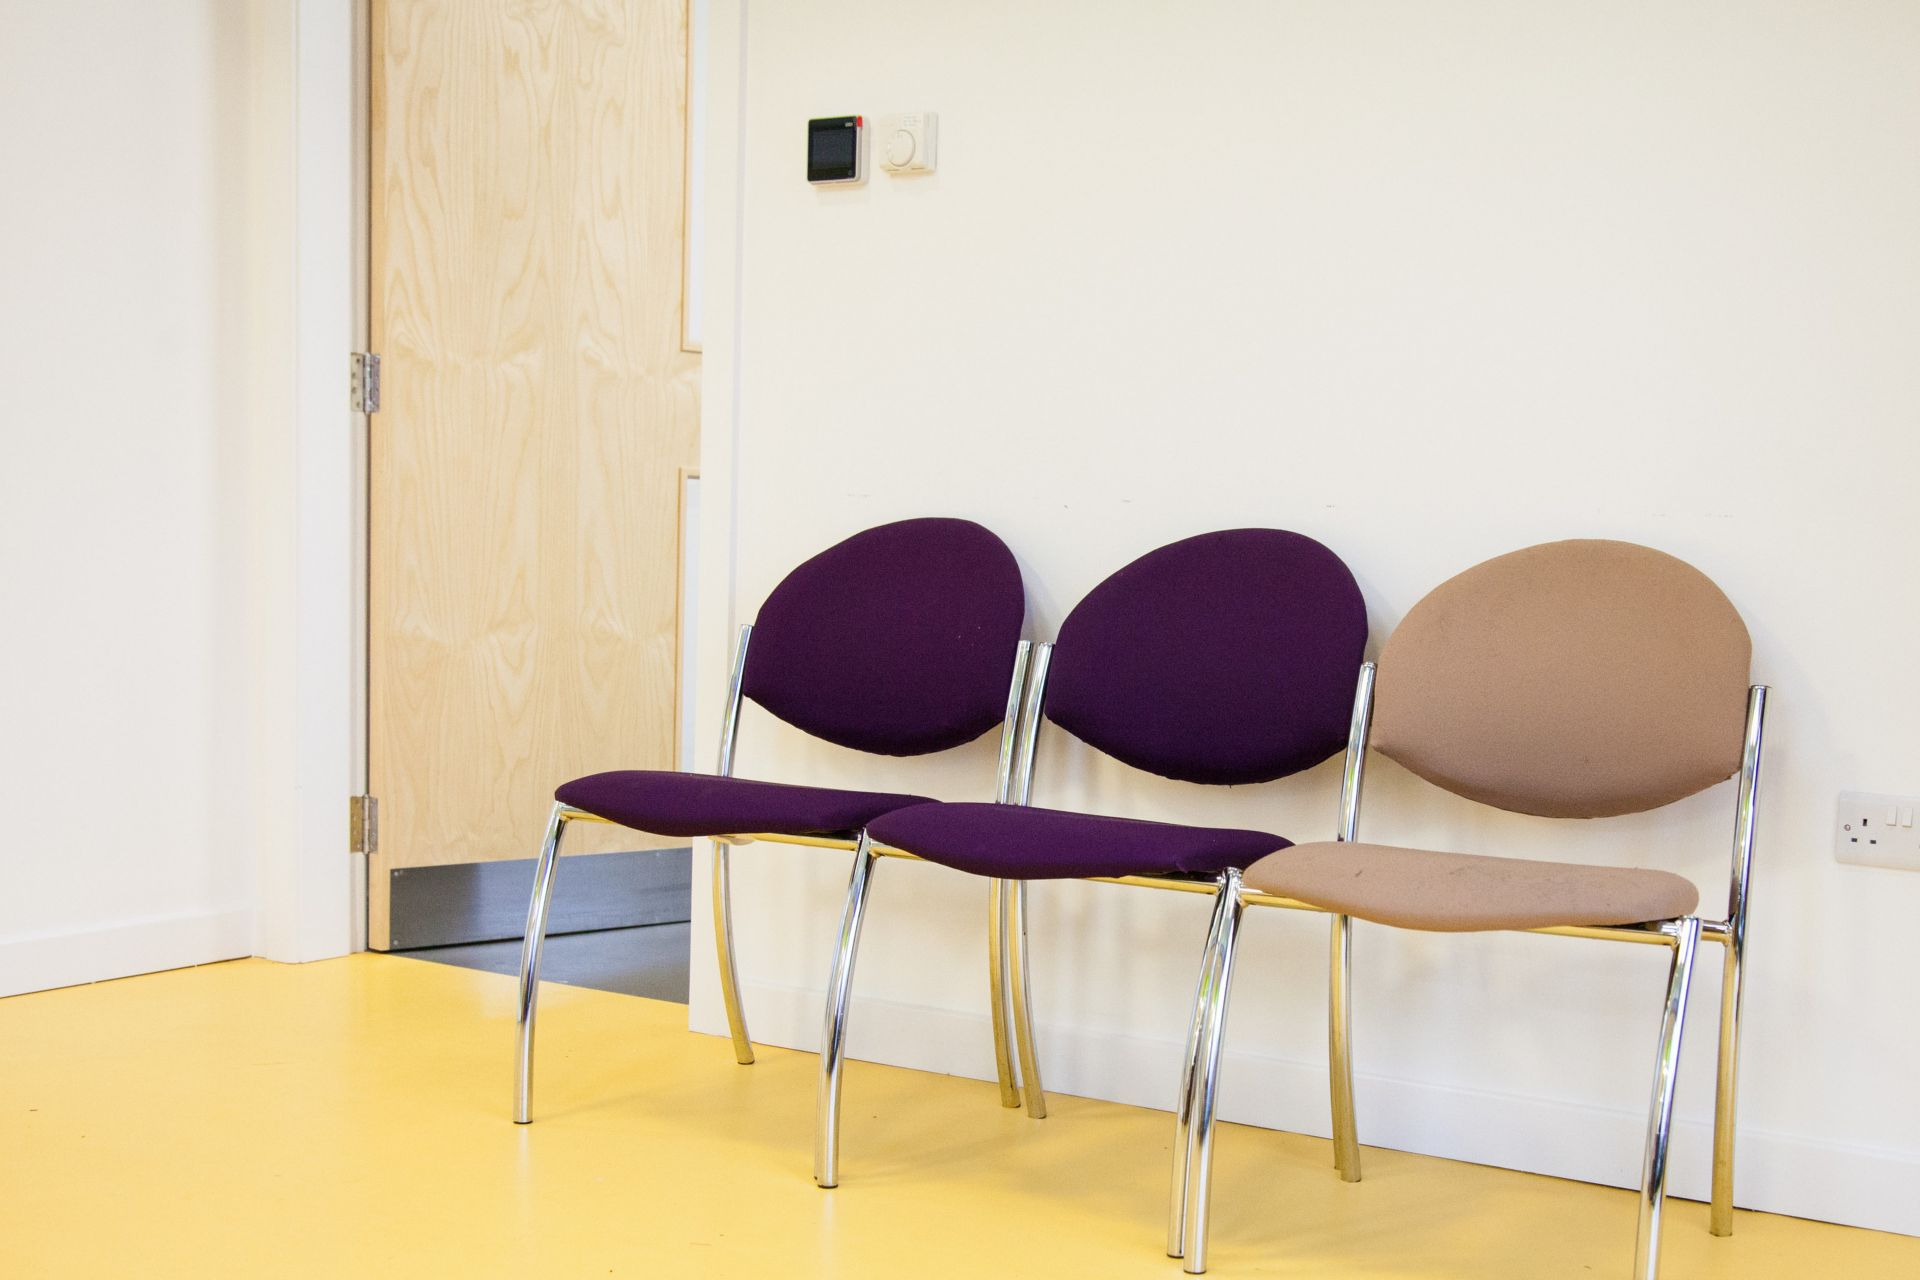 Decorative Yellow Comfortfloor applied at the Corridor of a hospital